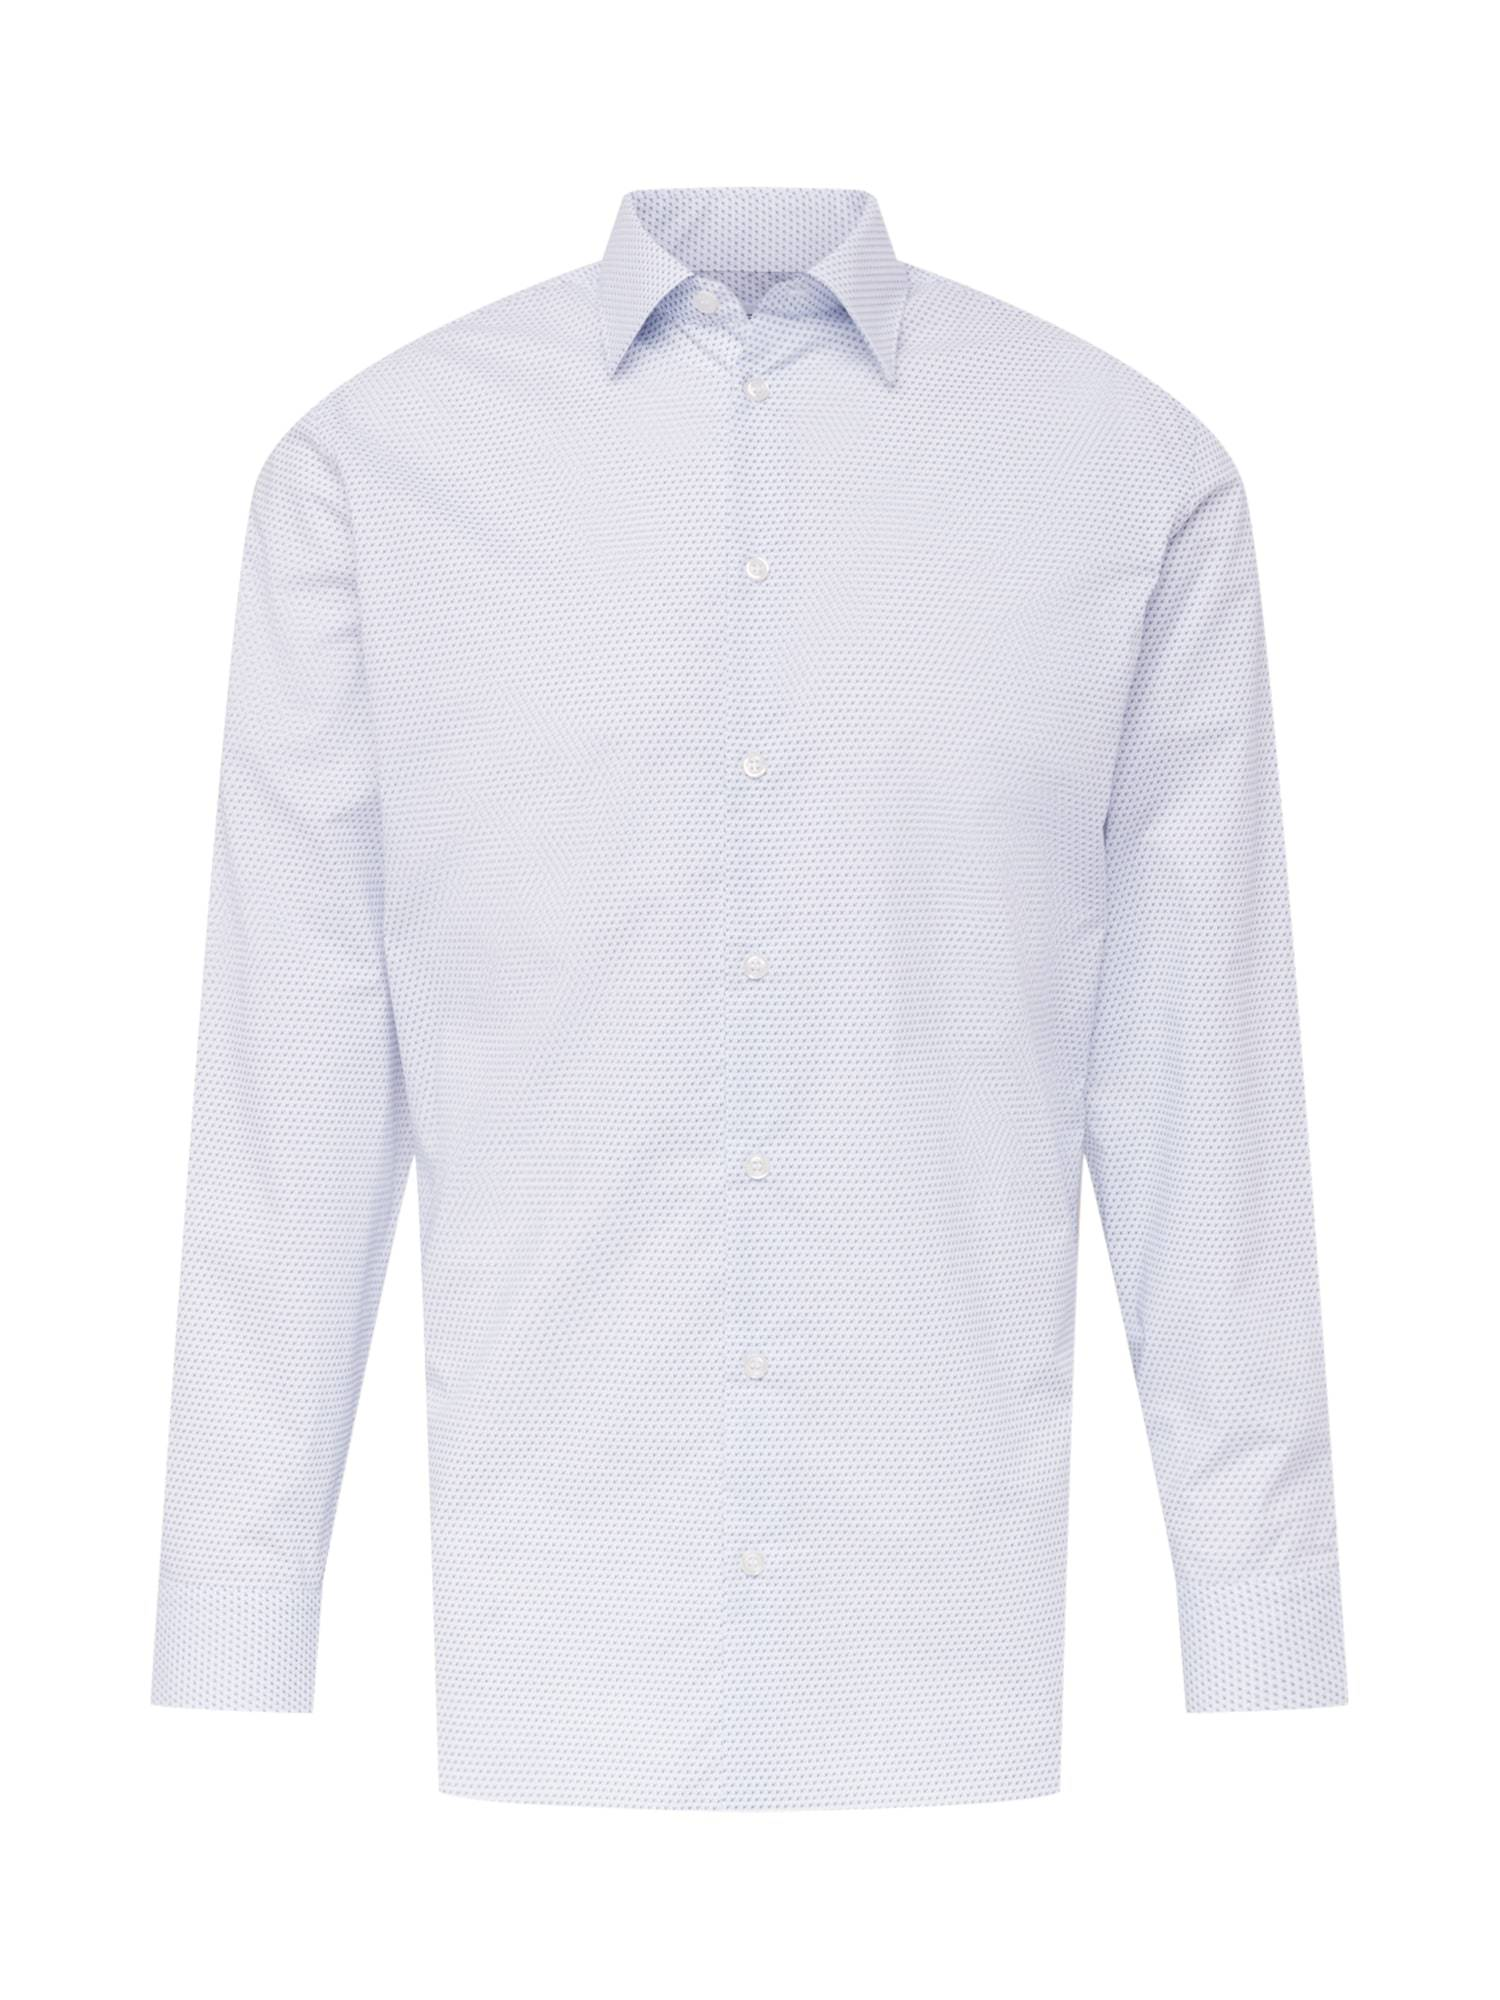 SELECTED HOMME Chemise  - Blanc - Taille: XL - male